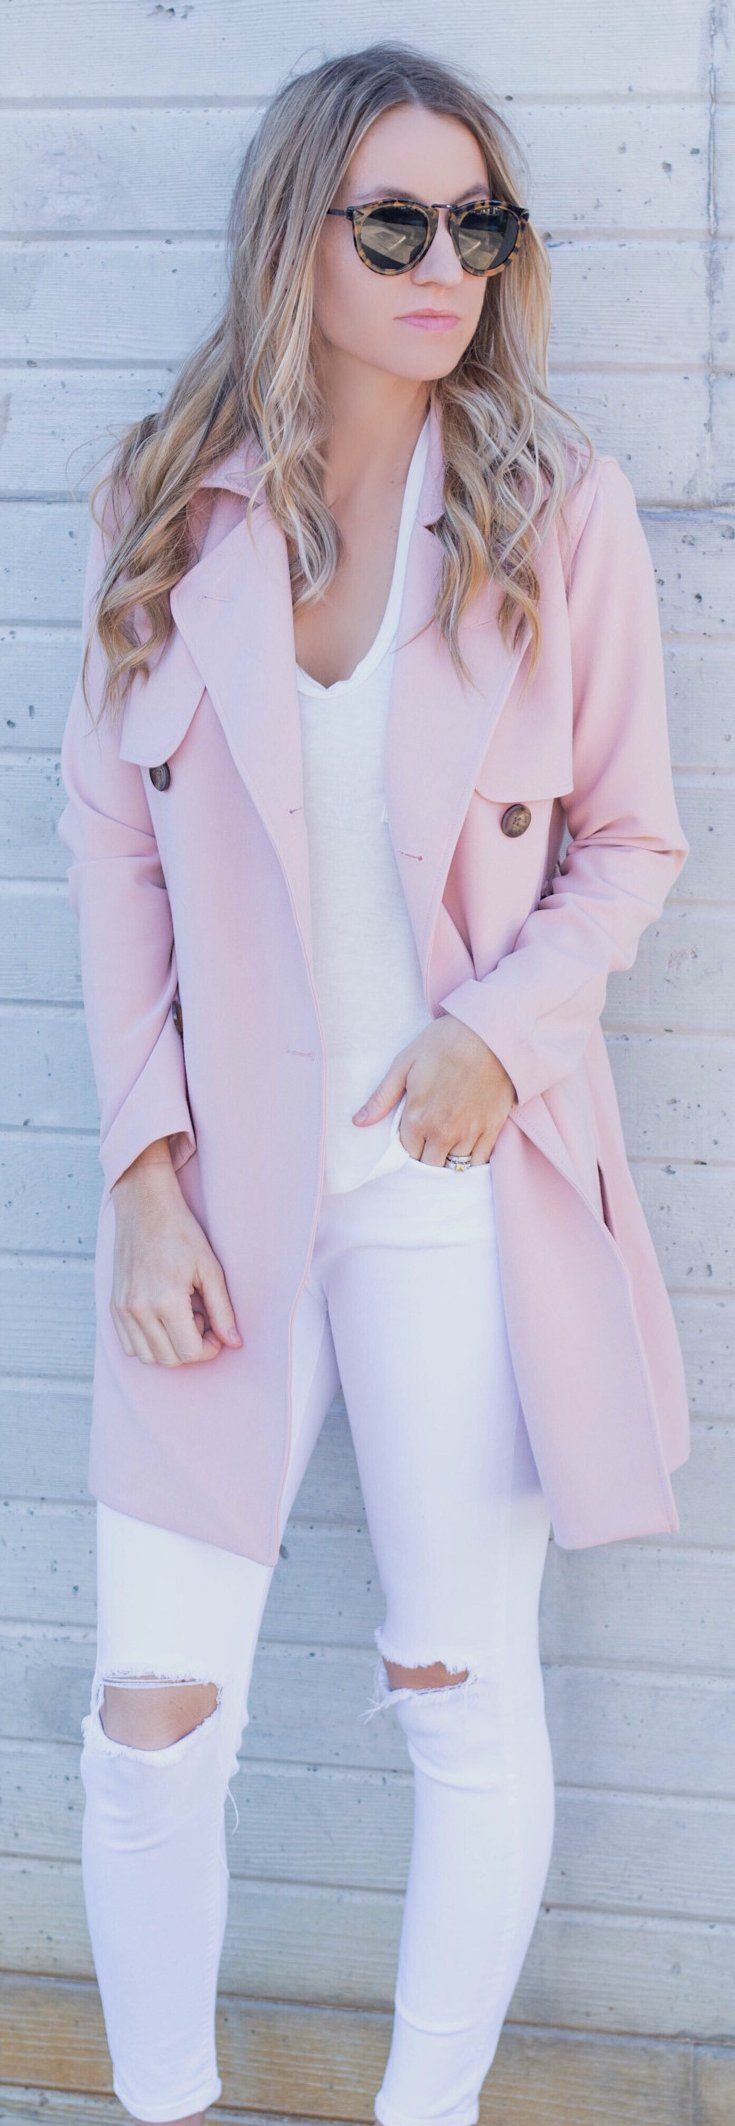 Pink Coat / White Top / White Ripped Skinny Jeans